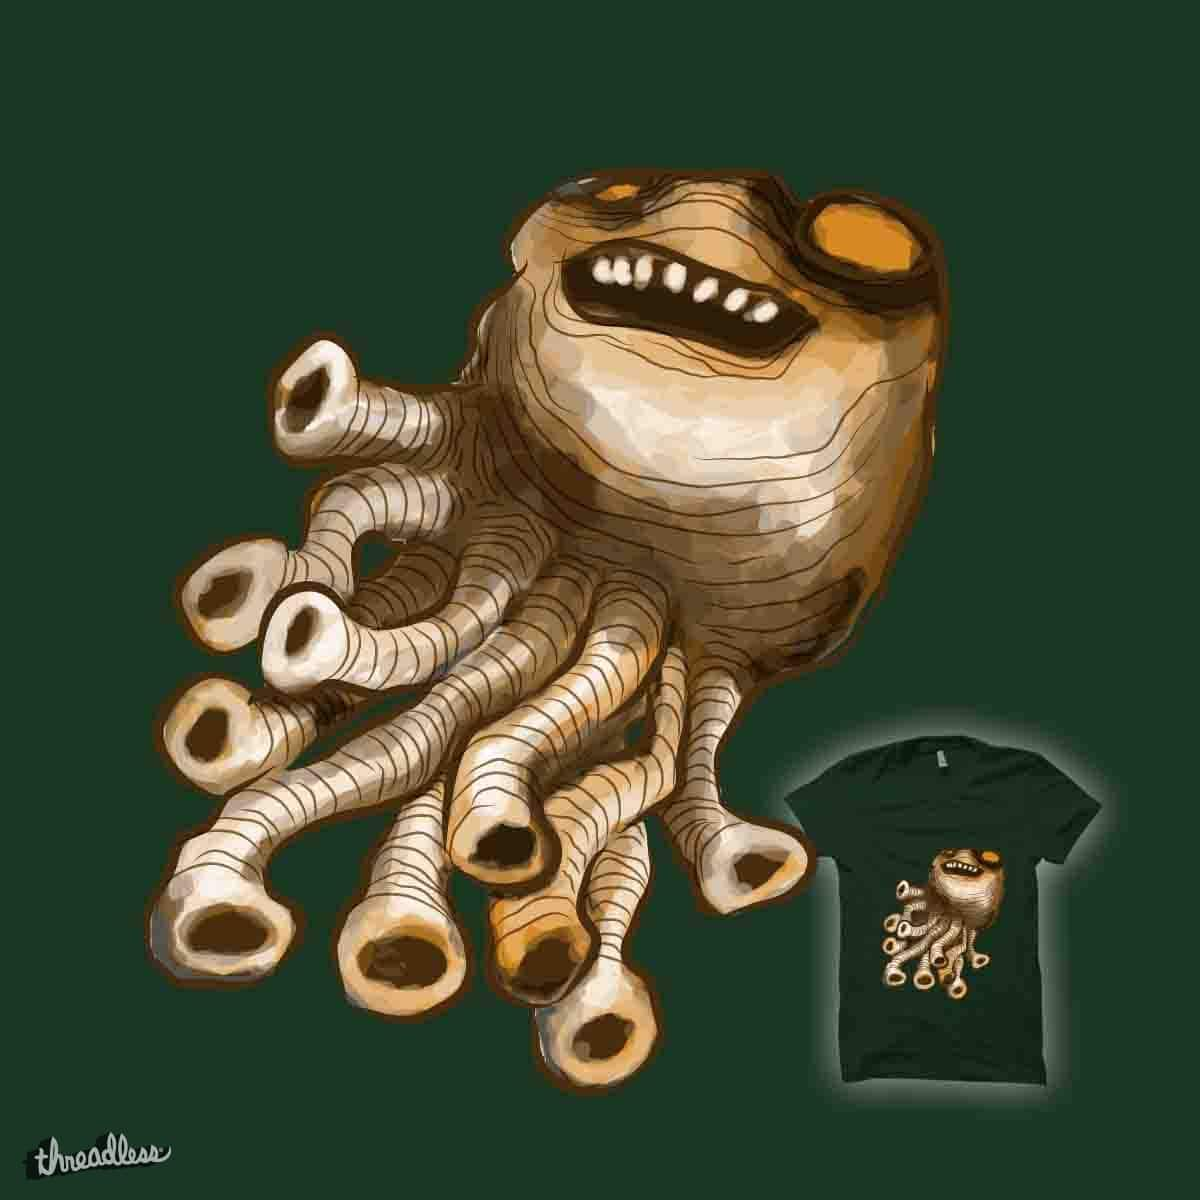 octoboss by nathaliomorales on Threadless